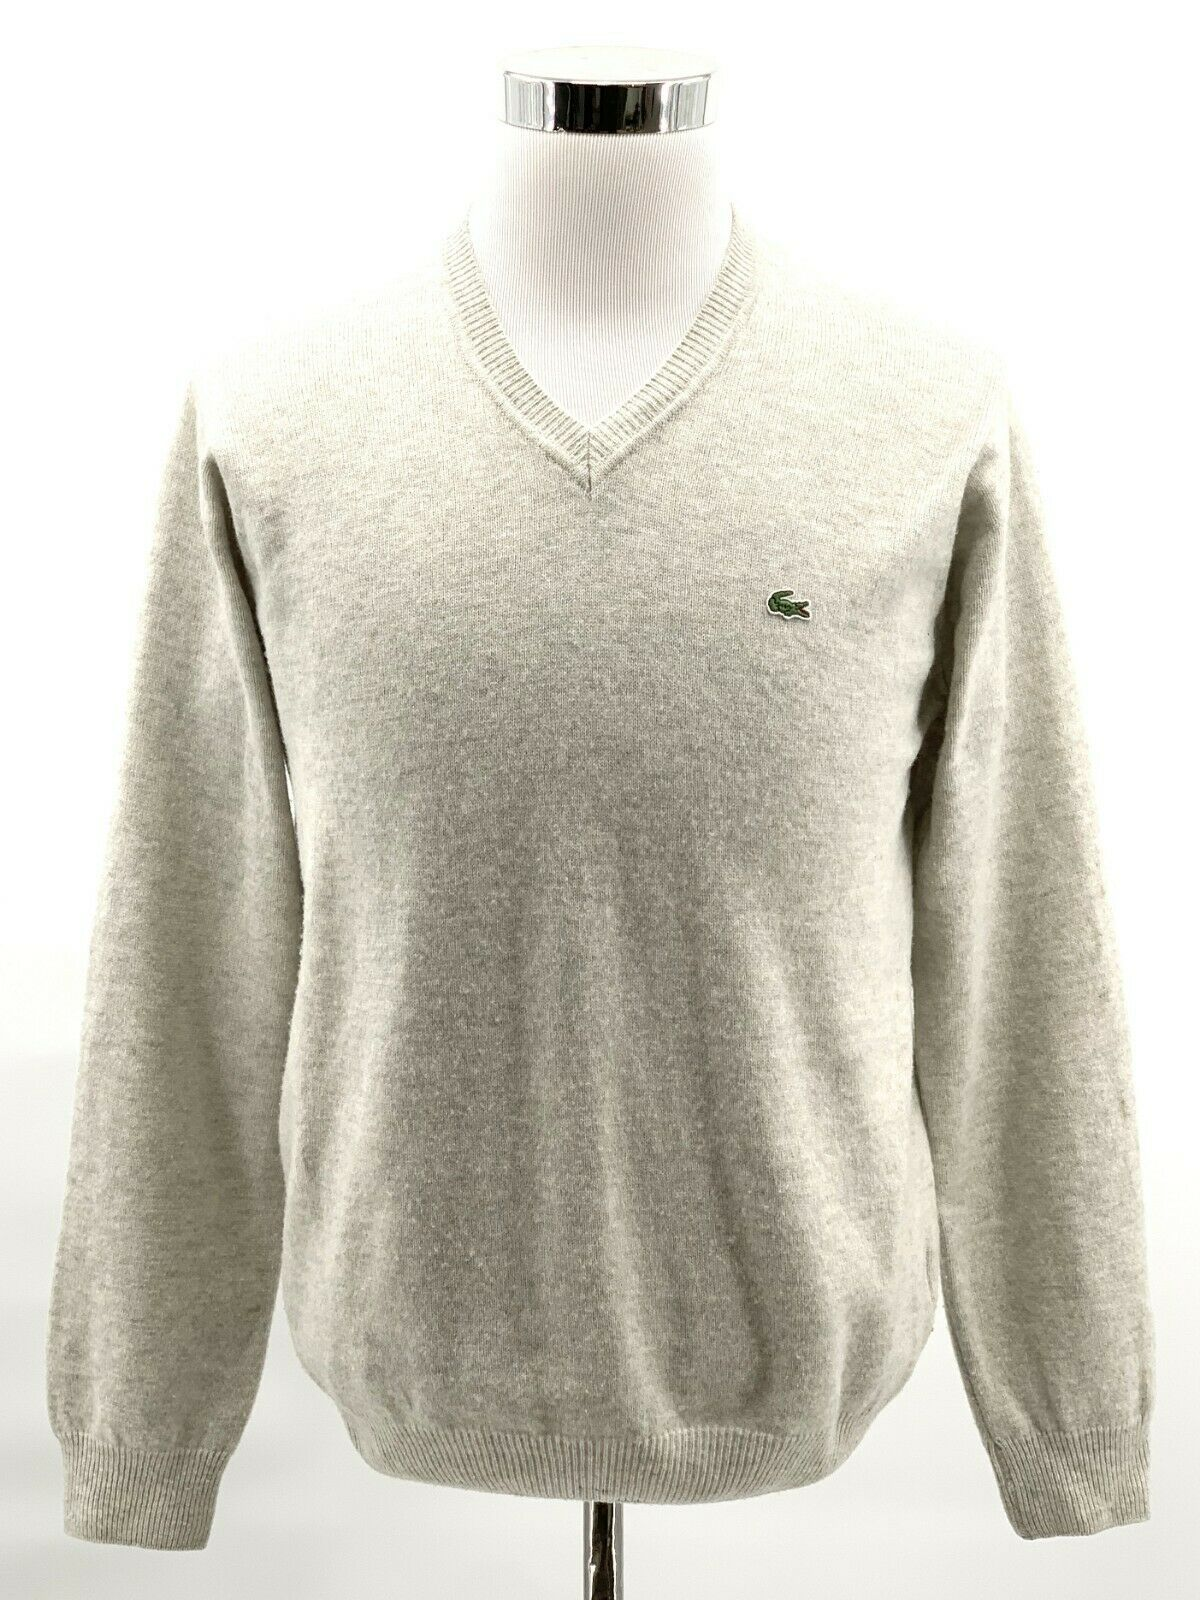 LACOSTE MEN/'S WOOL JERSEY V-NECK JUMPER//SWEATER GOLD CROC FR 3 SMALL rrp:-£140